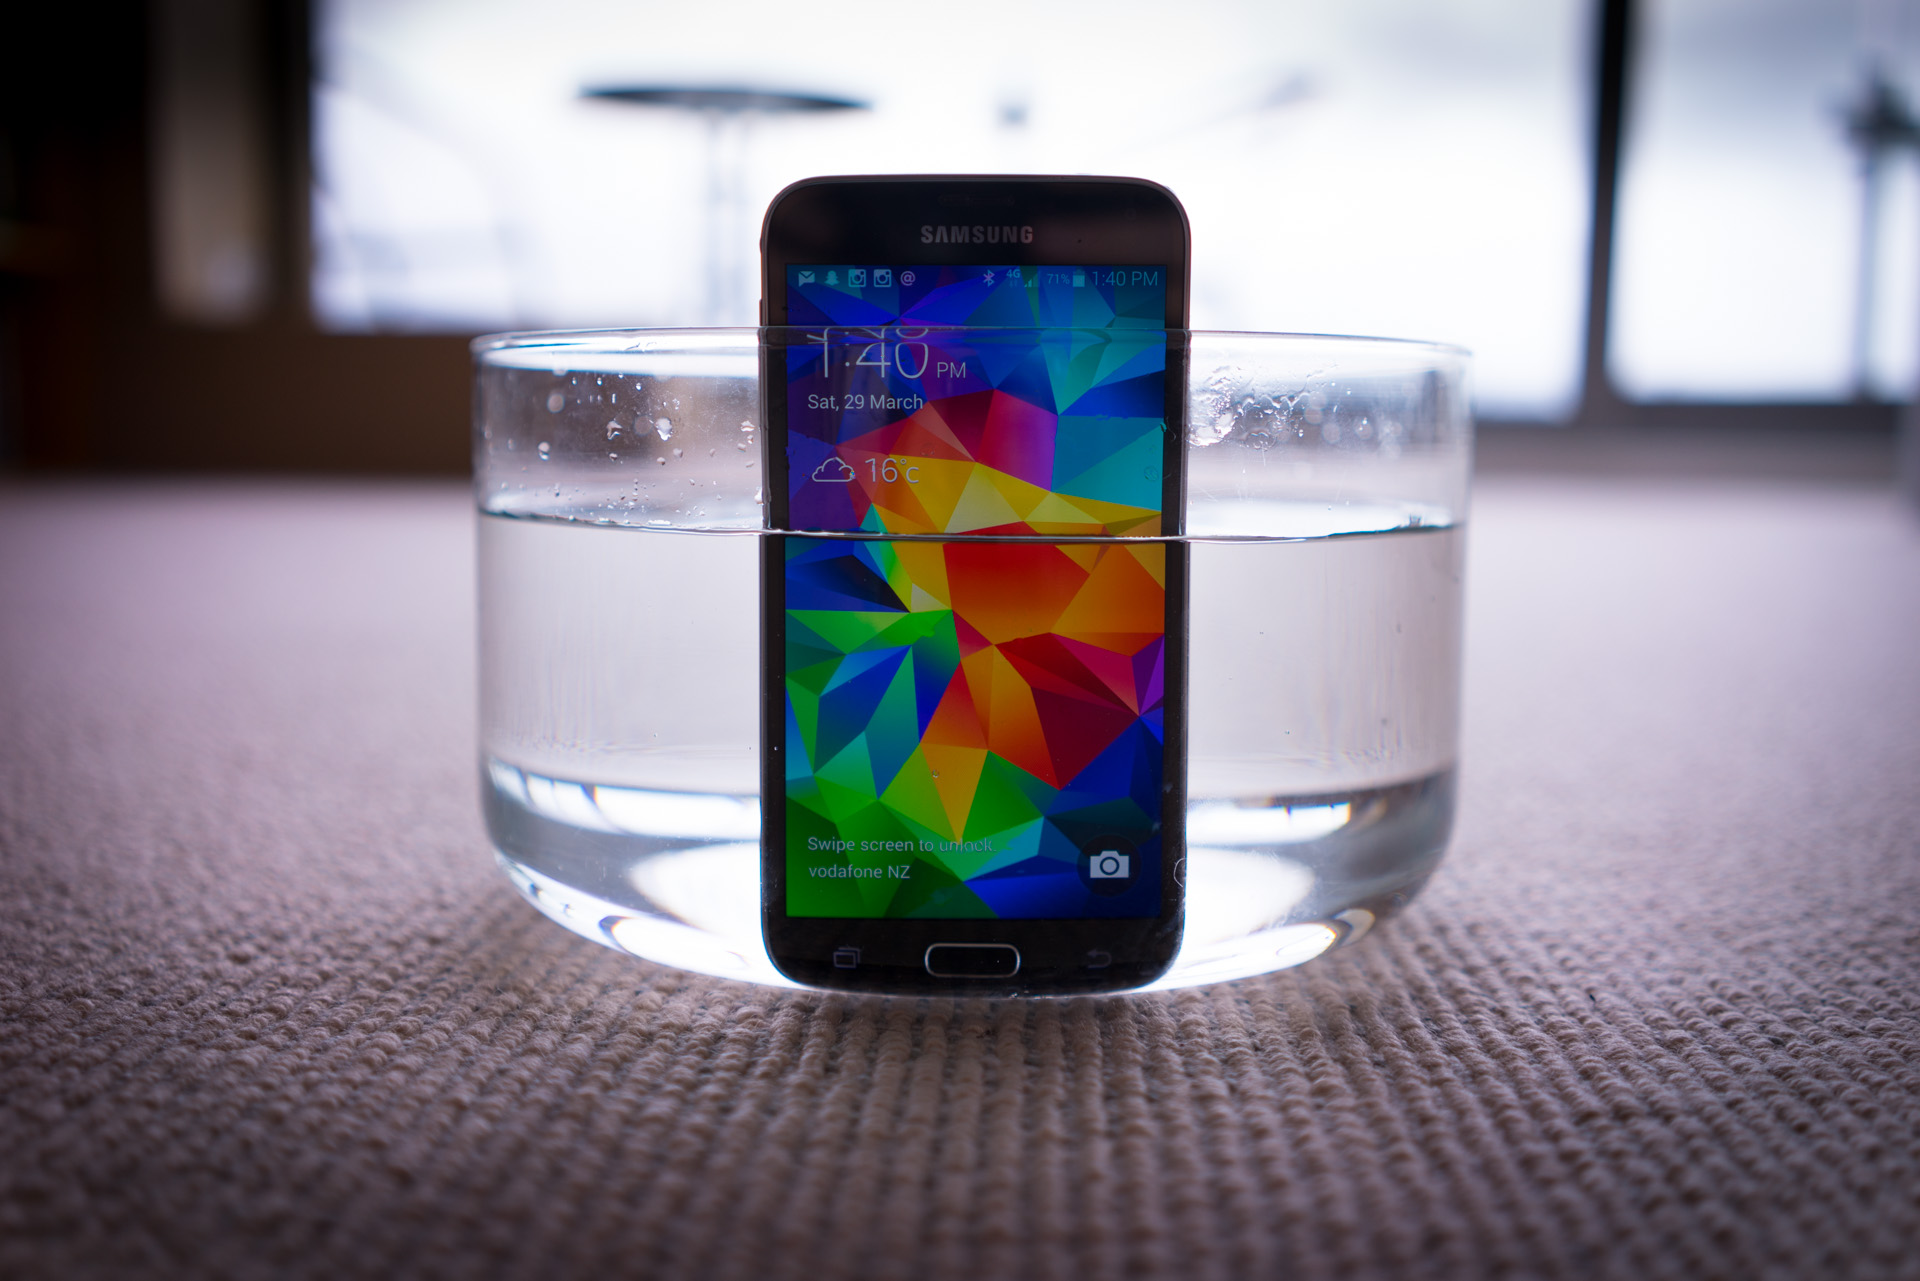 DSC07346 2 Samsung Galaxy S5 review: Incremental is the new cool